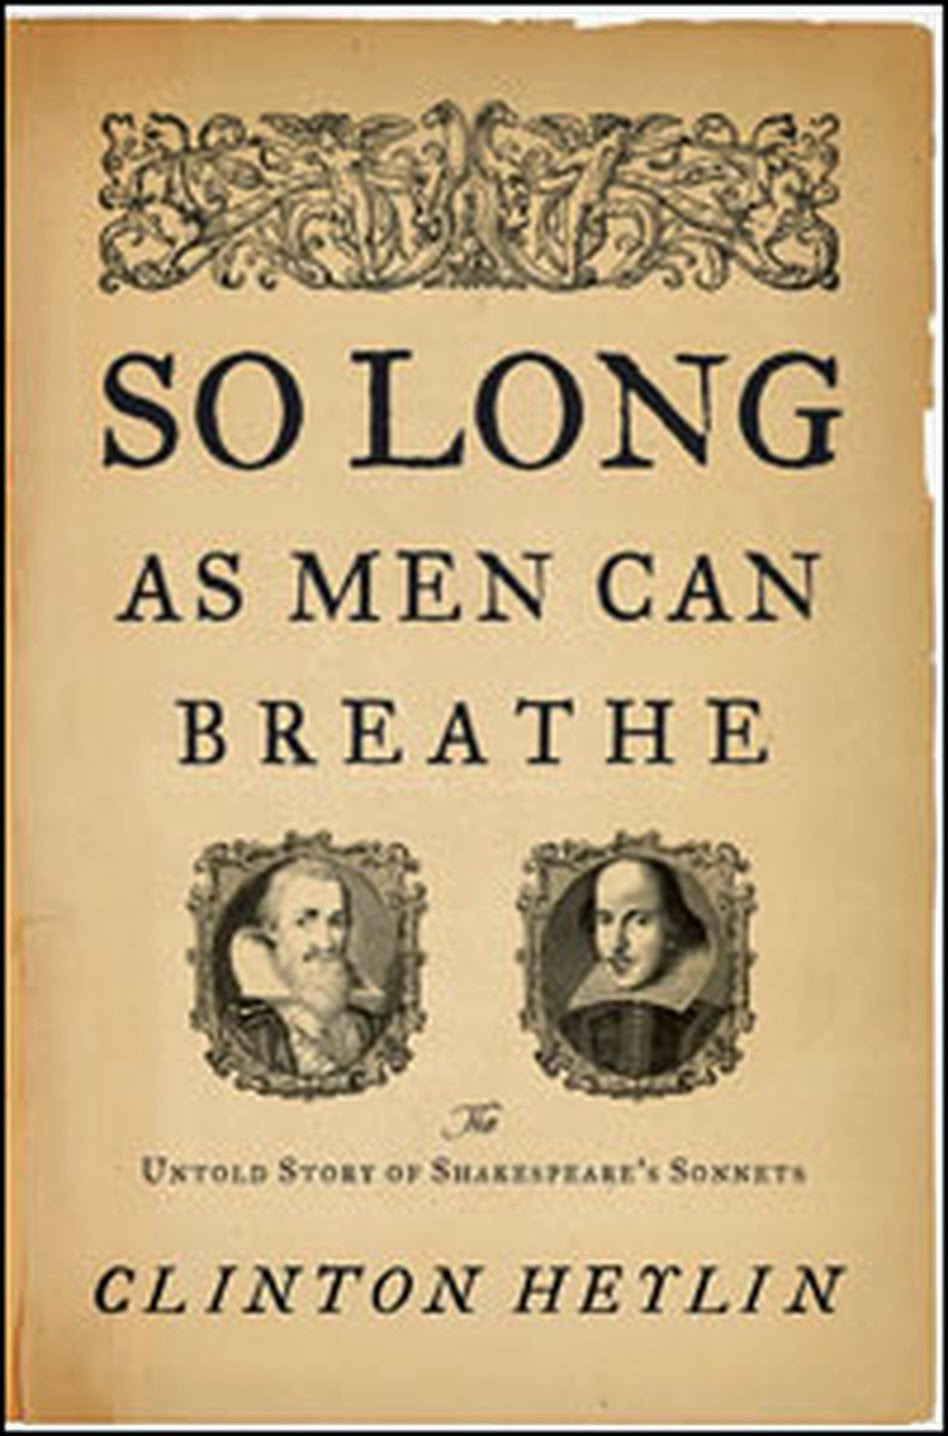 So Long as Men Can Breathe - Clinton Heylin